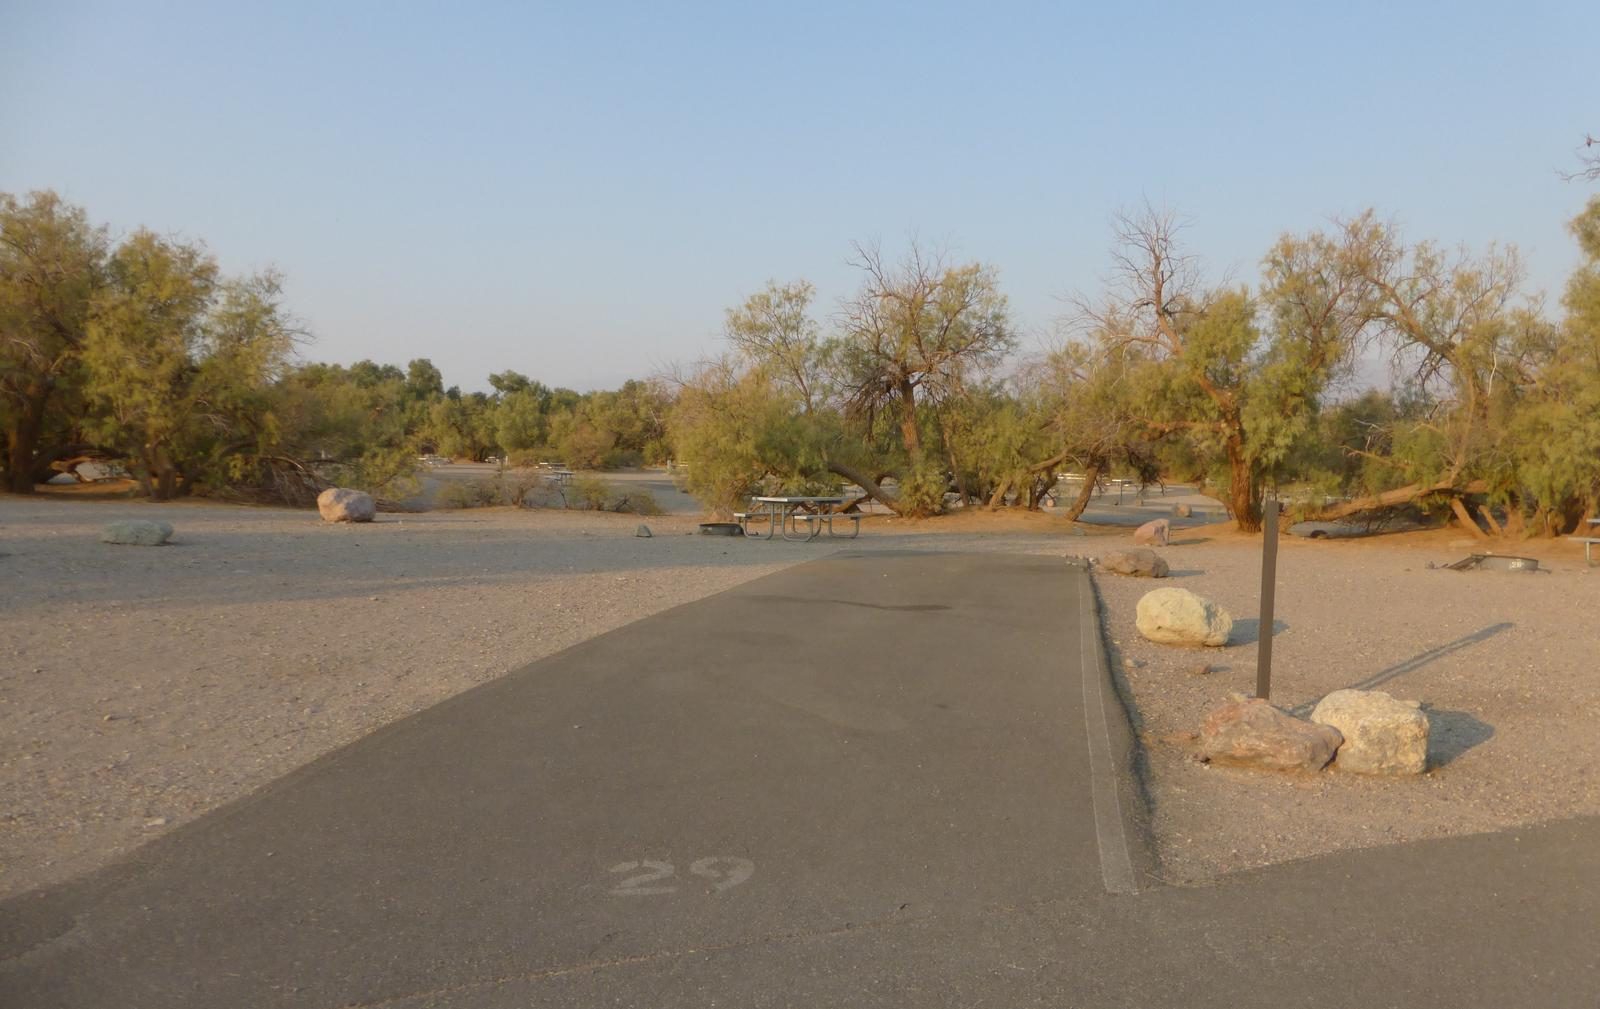 Furnace Creek Campground standard nonelectric site #29 with picnic table and fire ring.